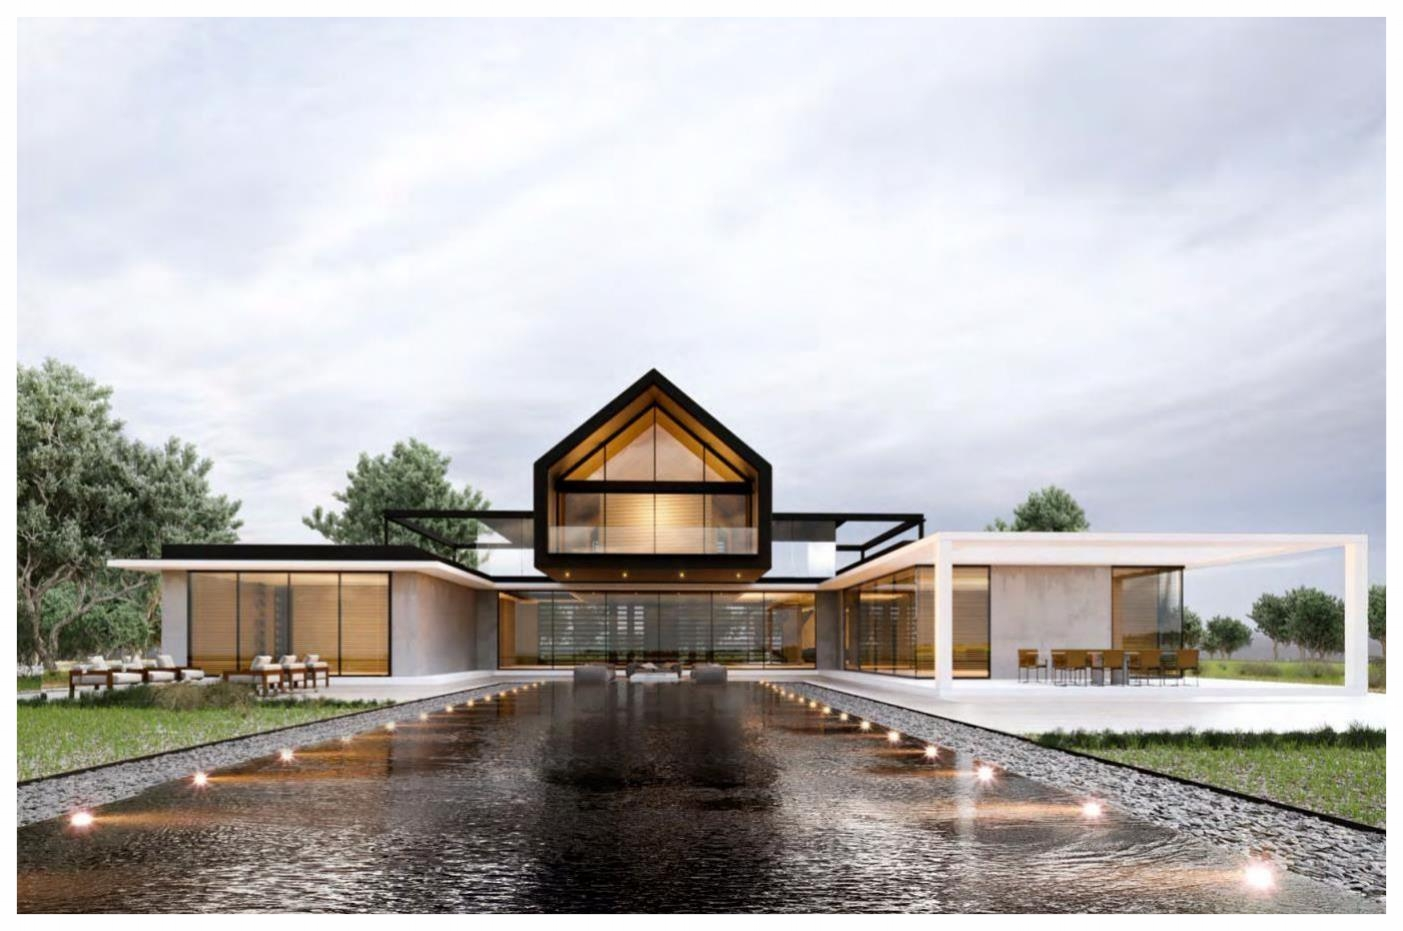 rear elevation / Rendering owned by noble design and architecture